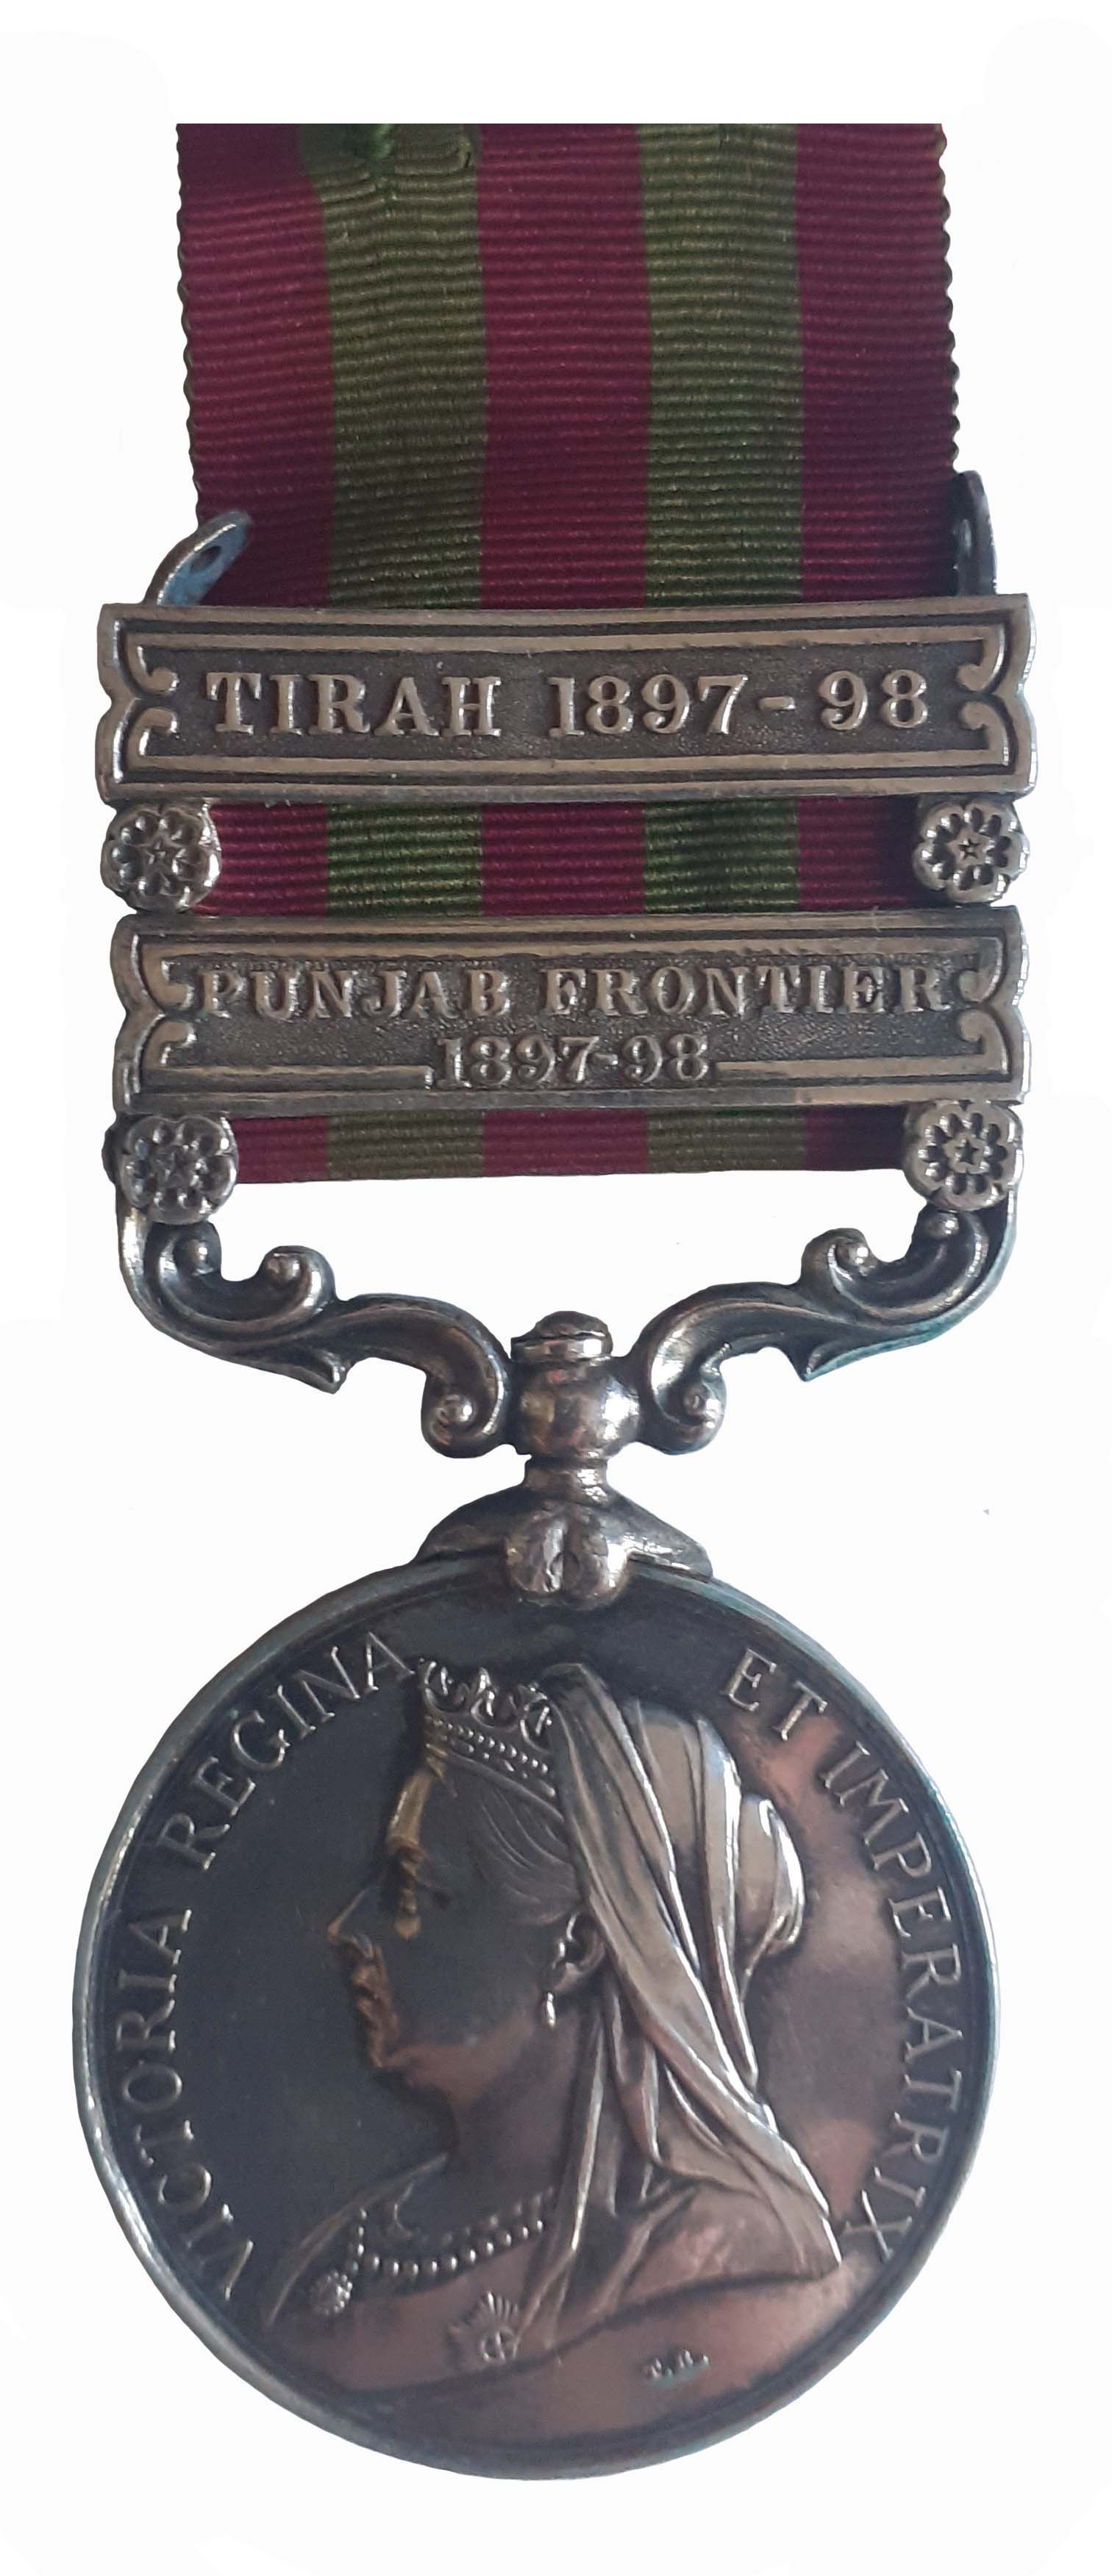 India Medal 1895-1902, QVR, two clasps, Punjab Frontier 1897-98, Tirah 1897-98, to Gunner C.E.C. Fisher